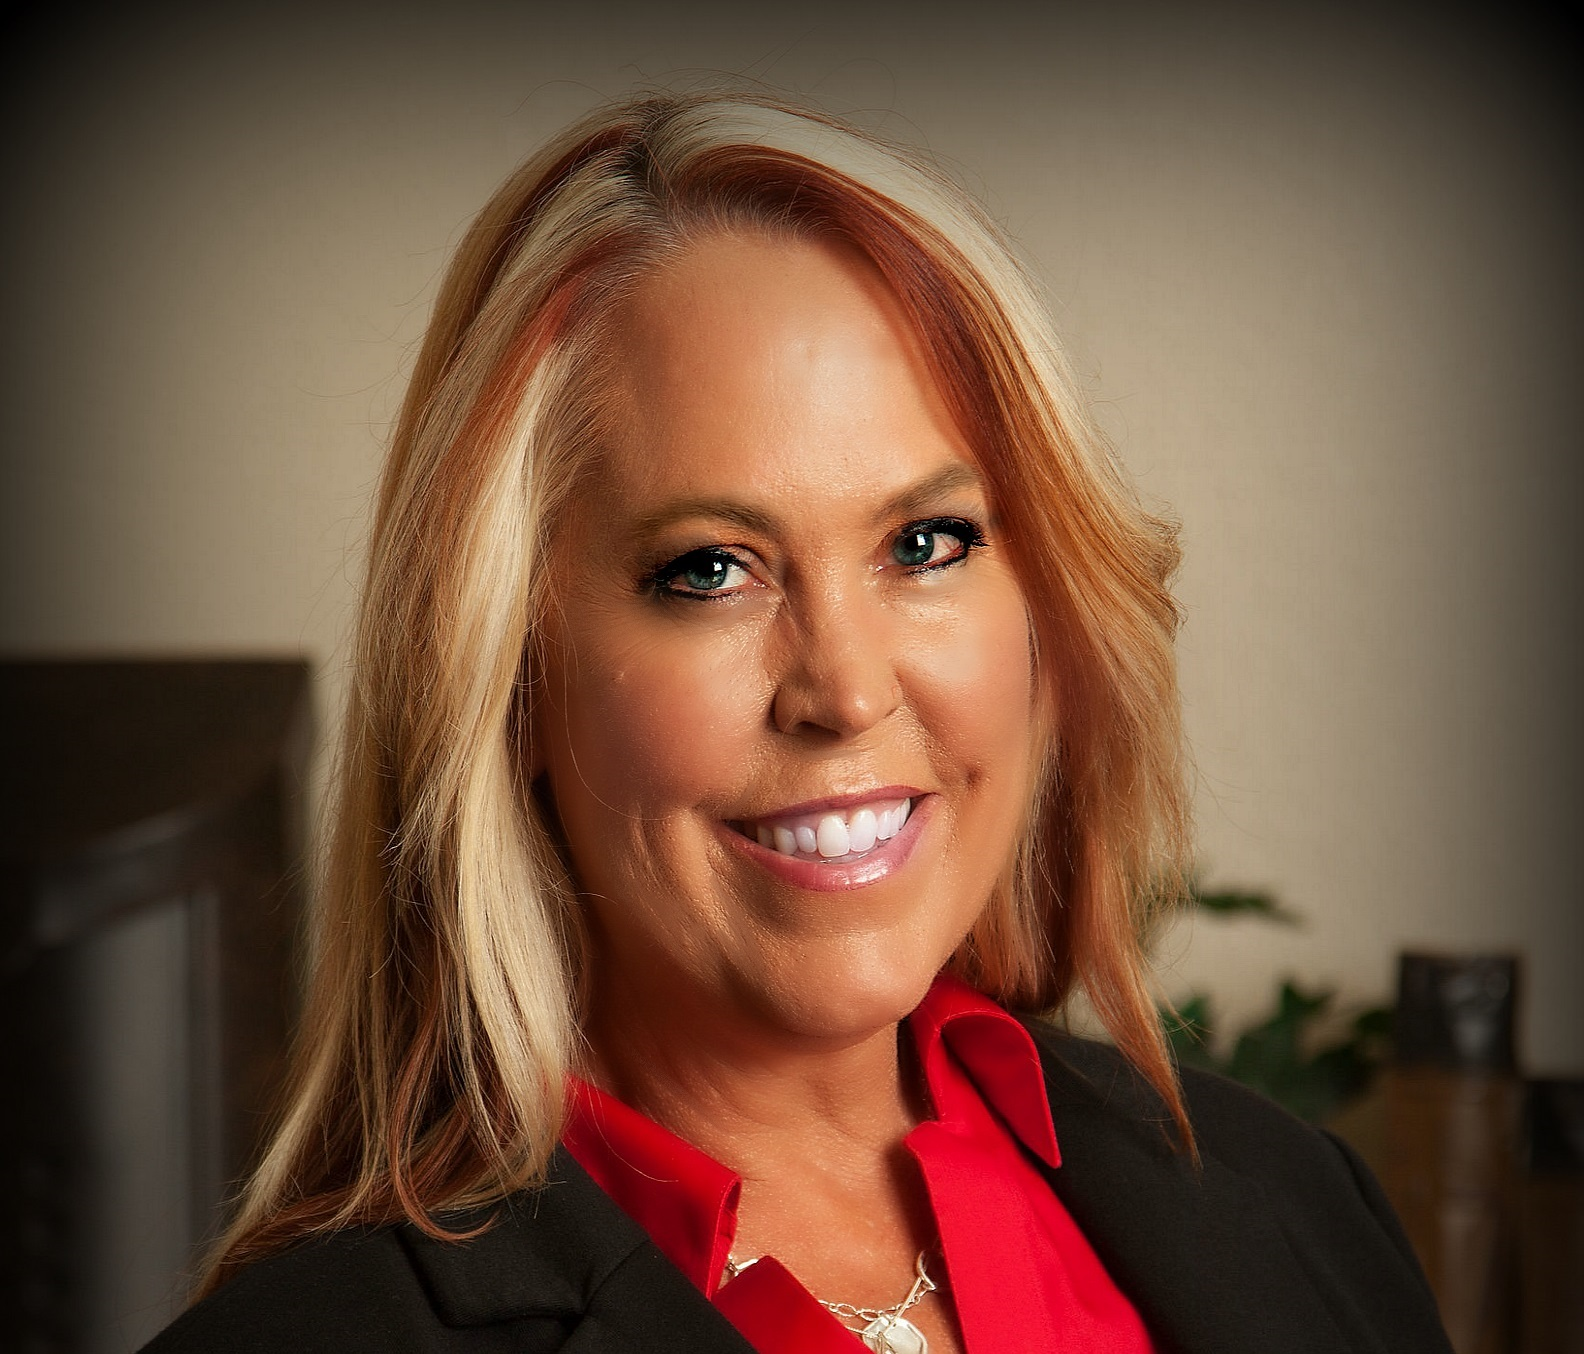 CEO Kimberly Skaggs to Be Interviewed on CBT Network's F&I Today Show